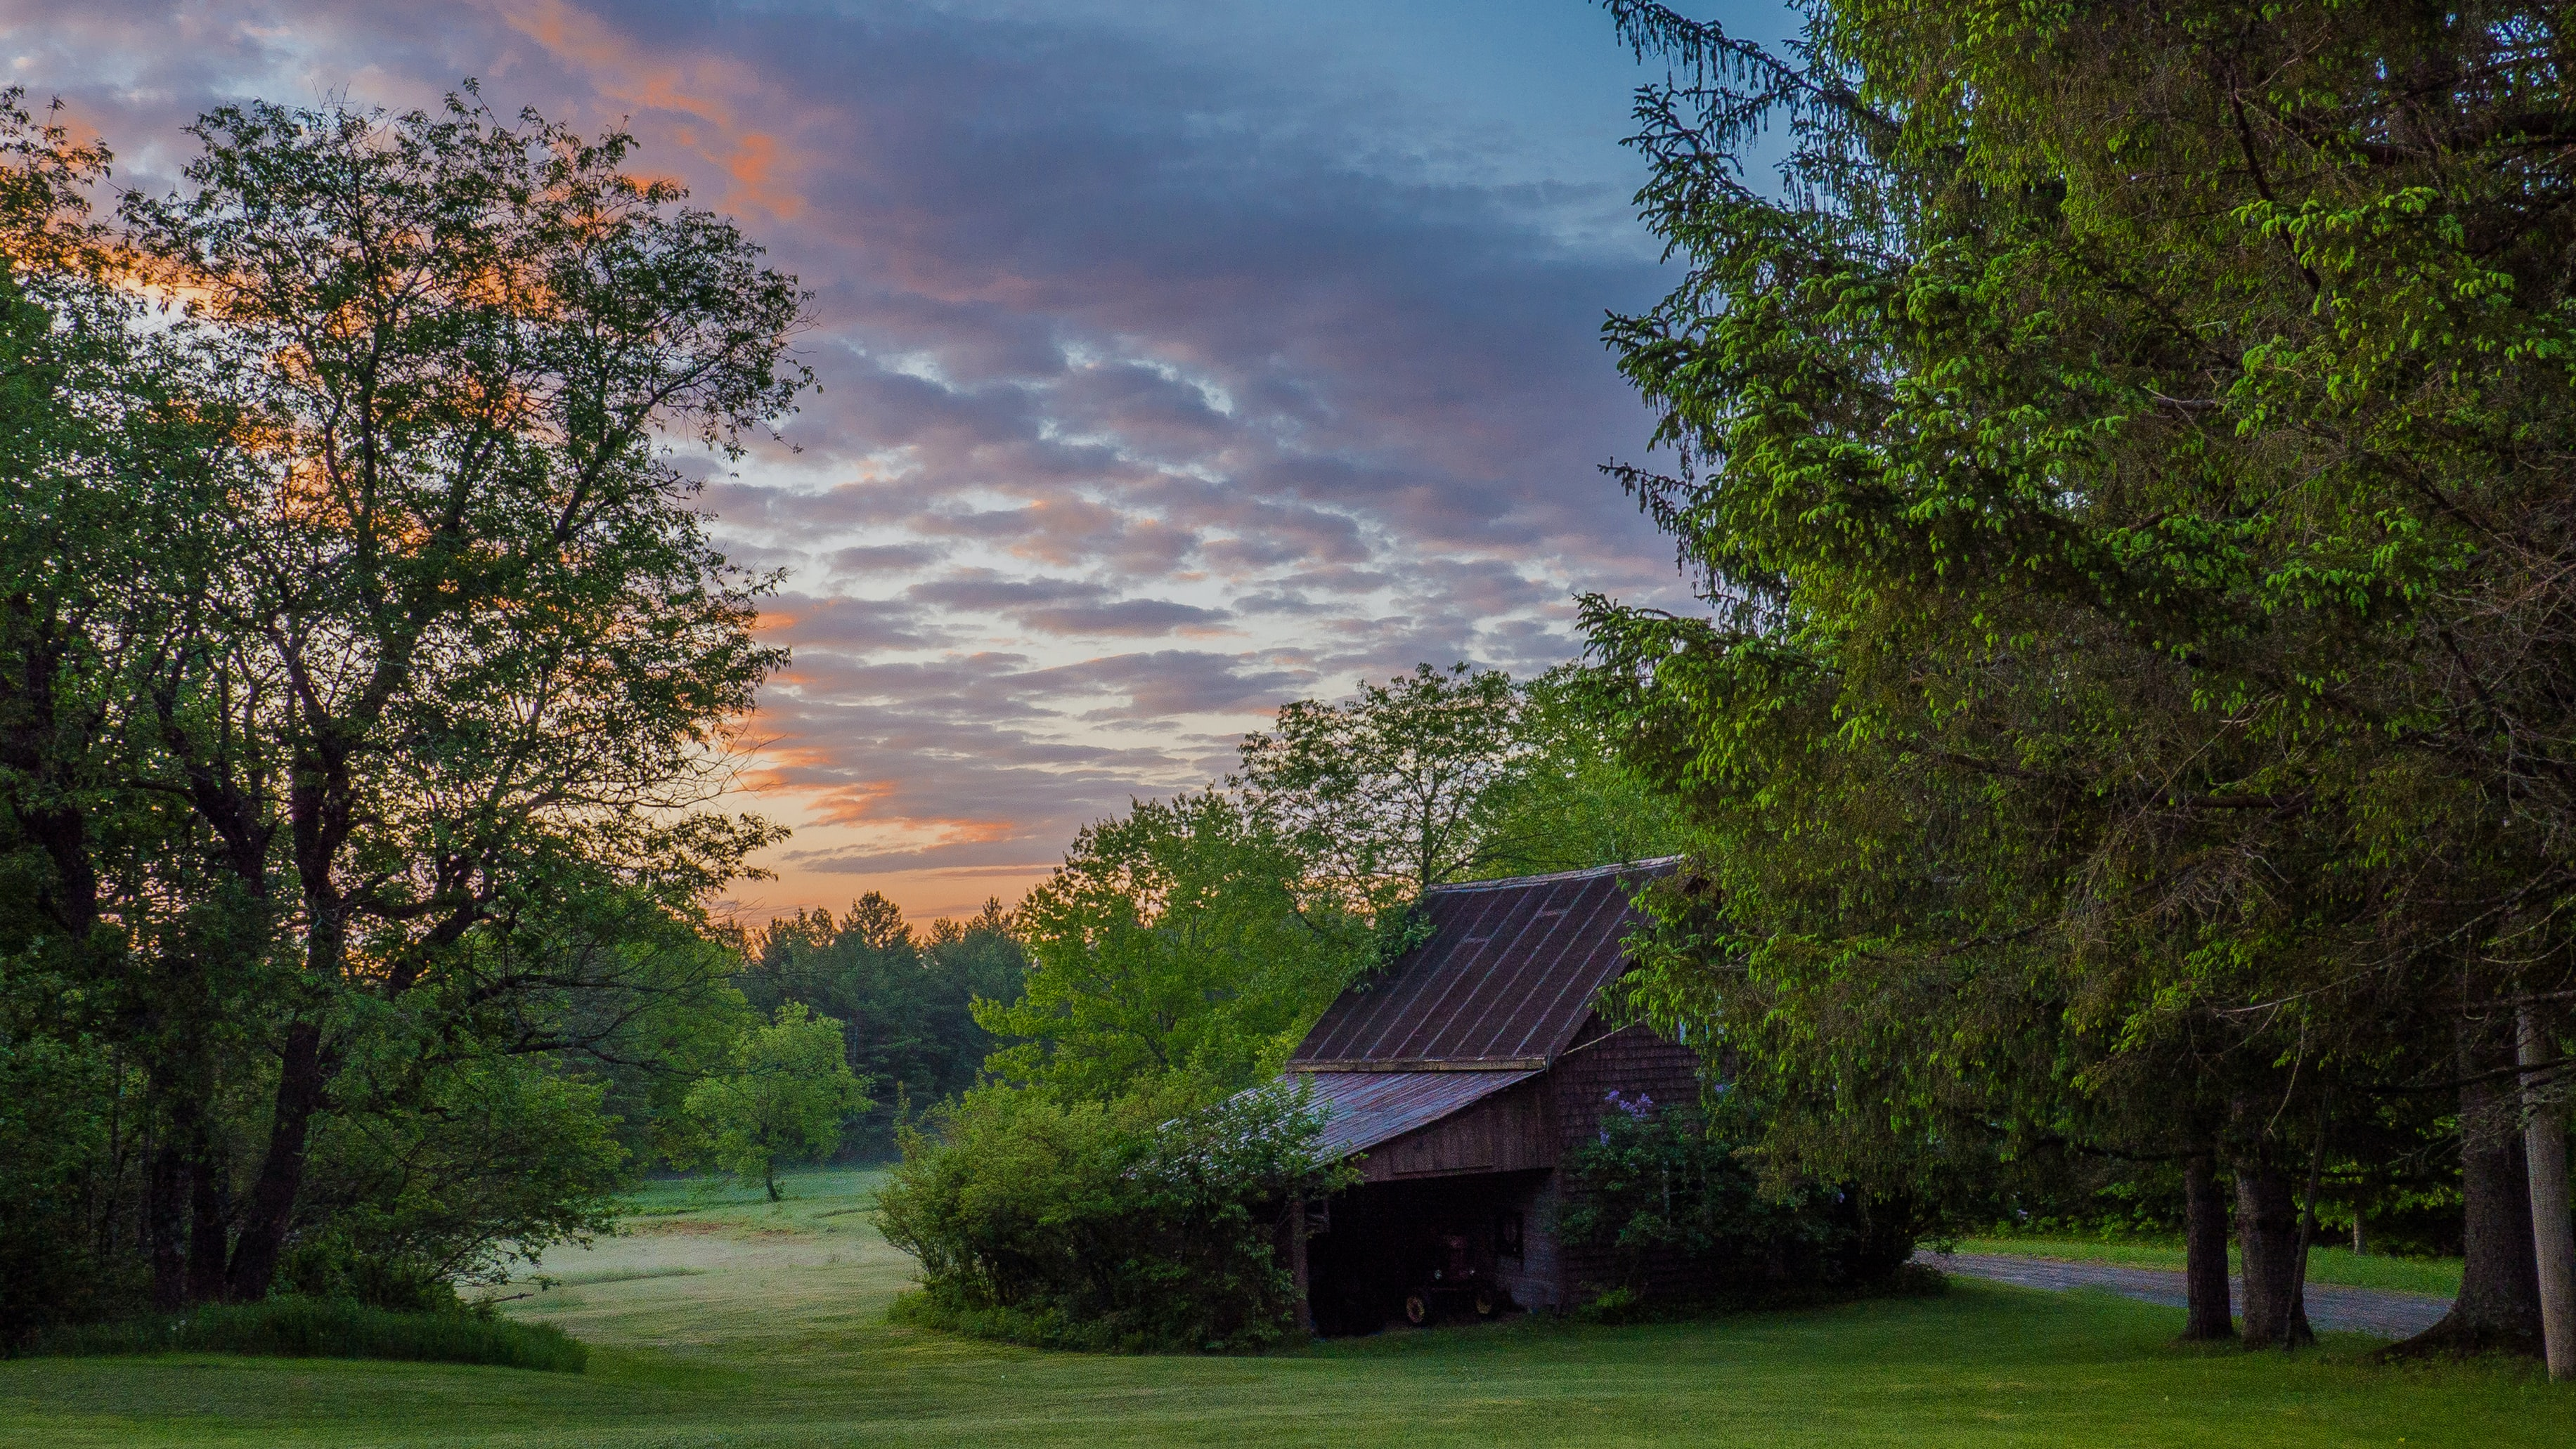 red house surrounded by trees during dawn